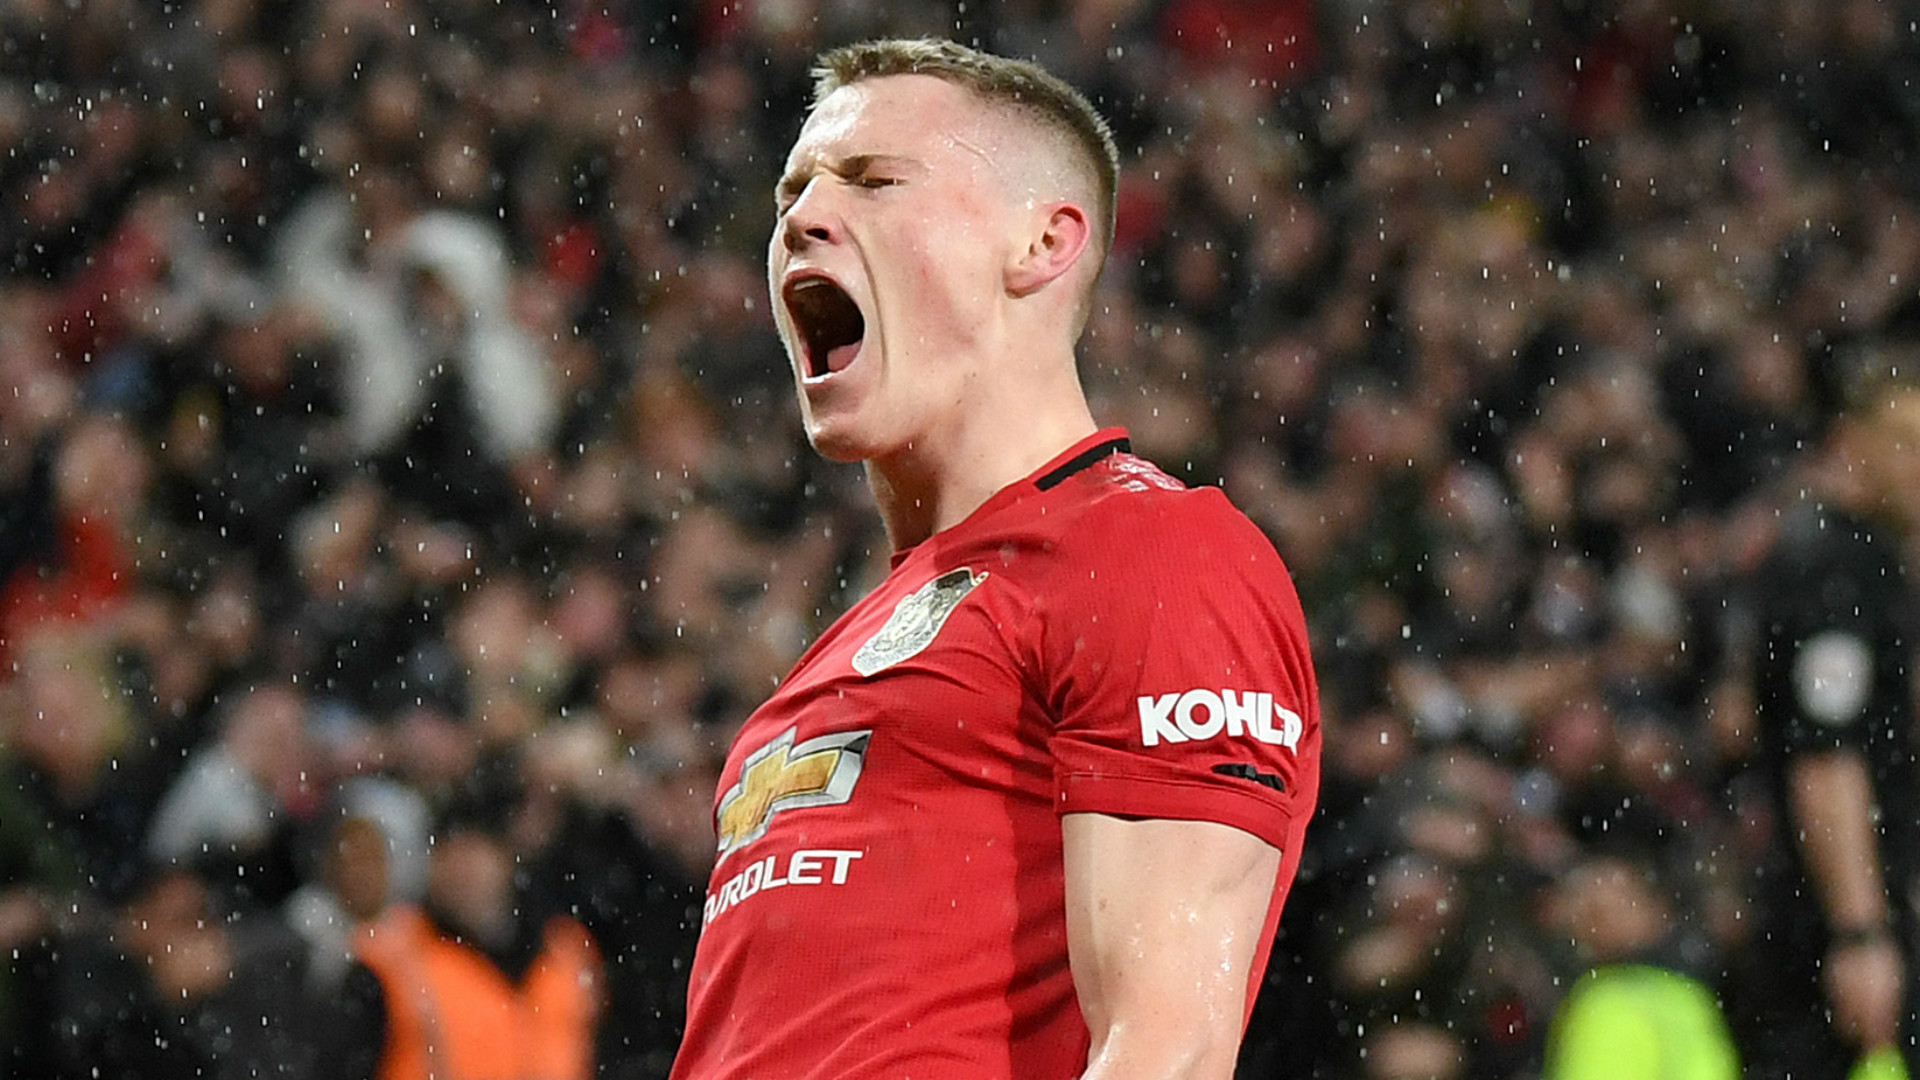 Man Utd Star Mctominay Embraces Short Break In Disrupted Summer As He Prepares For Scotland Duty In Nations League Goal Com